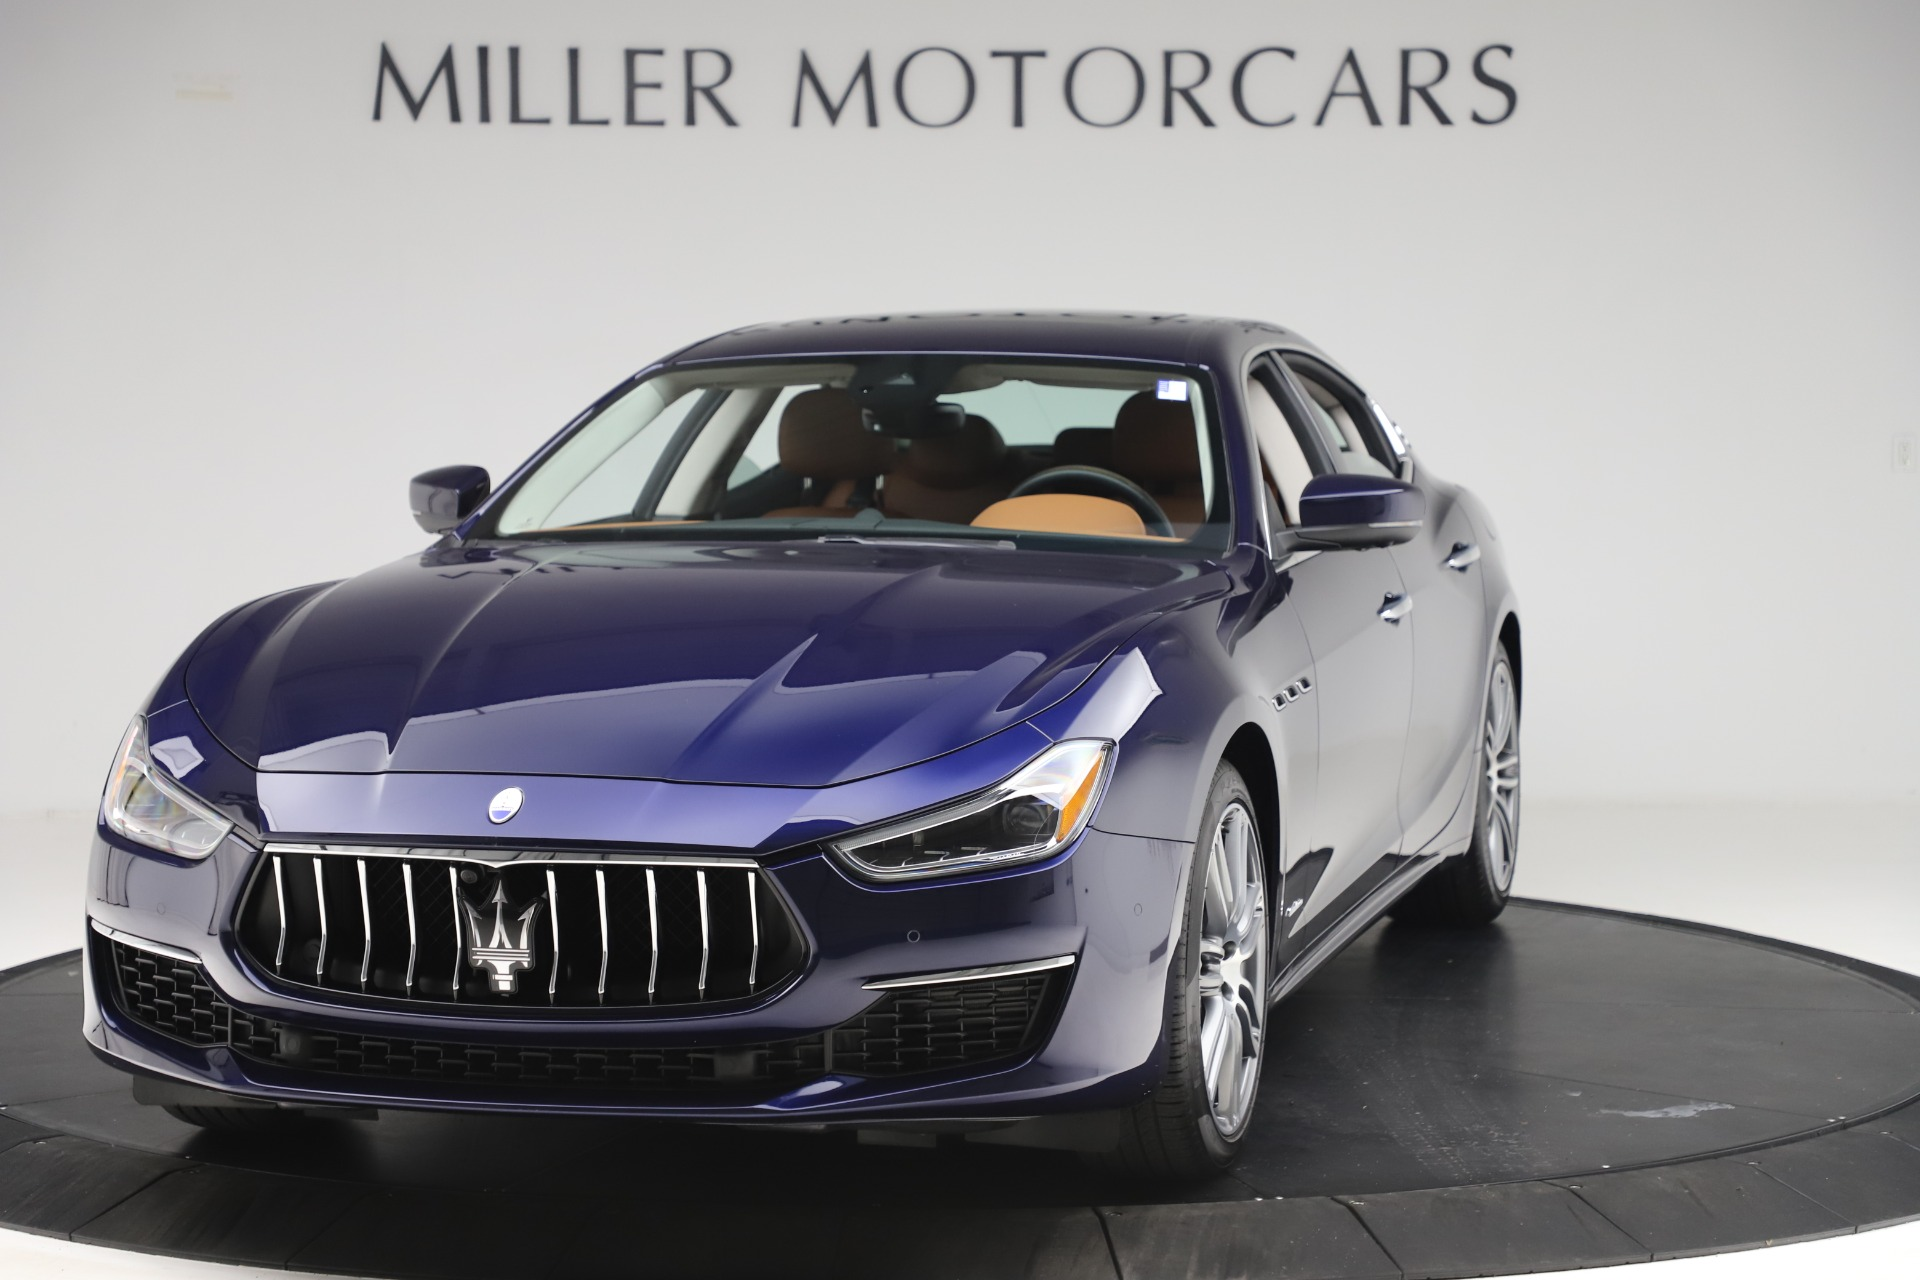 New 2020 Maserati Ghibli S Q4 GranLusso for sale Sold at Pagani of Greenwich in Greenwich CT 06830 1